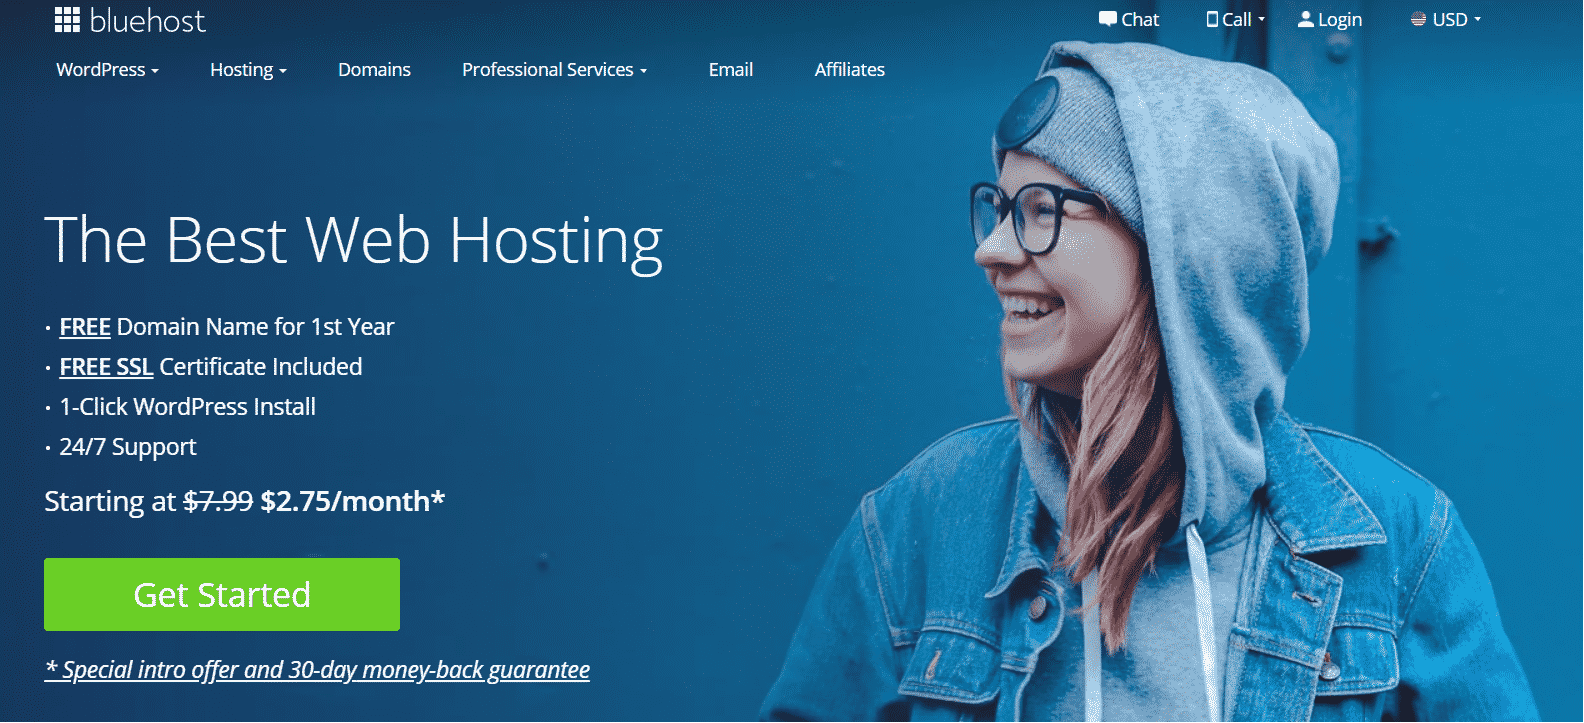 Bluehost Plans And Pricings